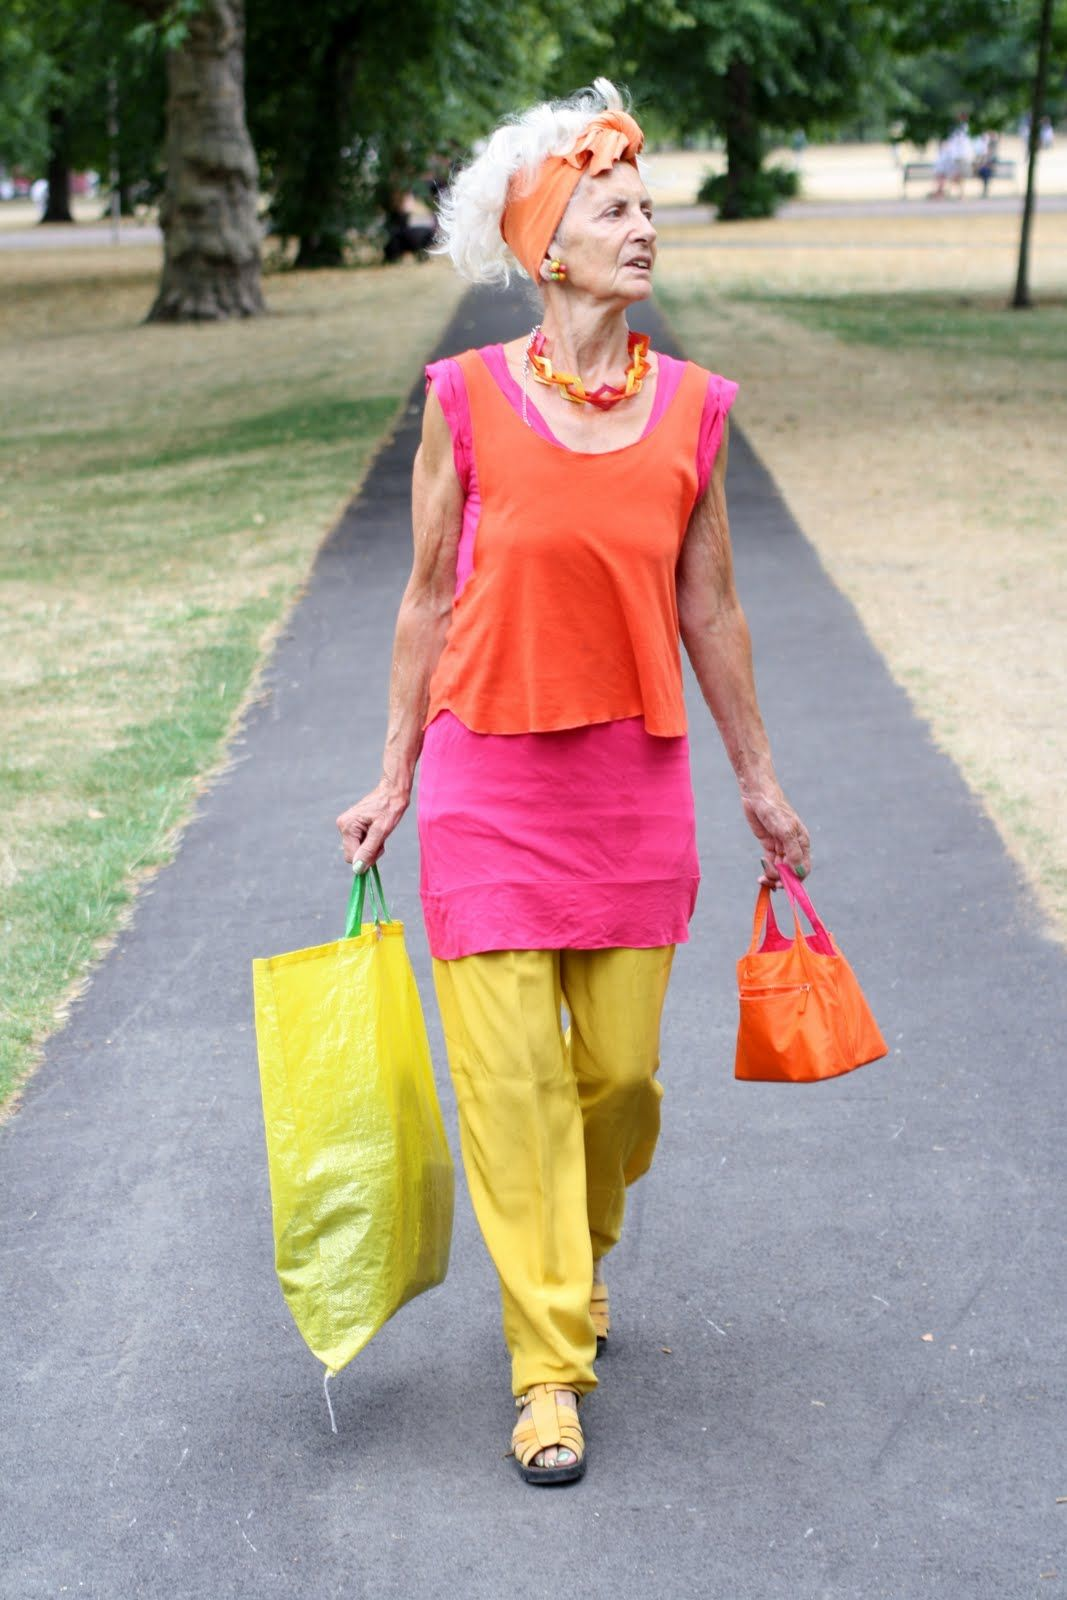 """LOVE this! Another pinner said: """"She could be following the color blocking trend, or she might just be loving the popart colors~who cares?? At this age do whatever you want and if others think you have demetia, let them! Give yourself a smile then whack 'em with your eco-friendly shopping bag!"""" :)))"""